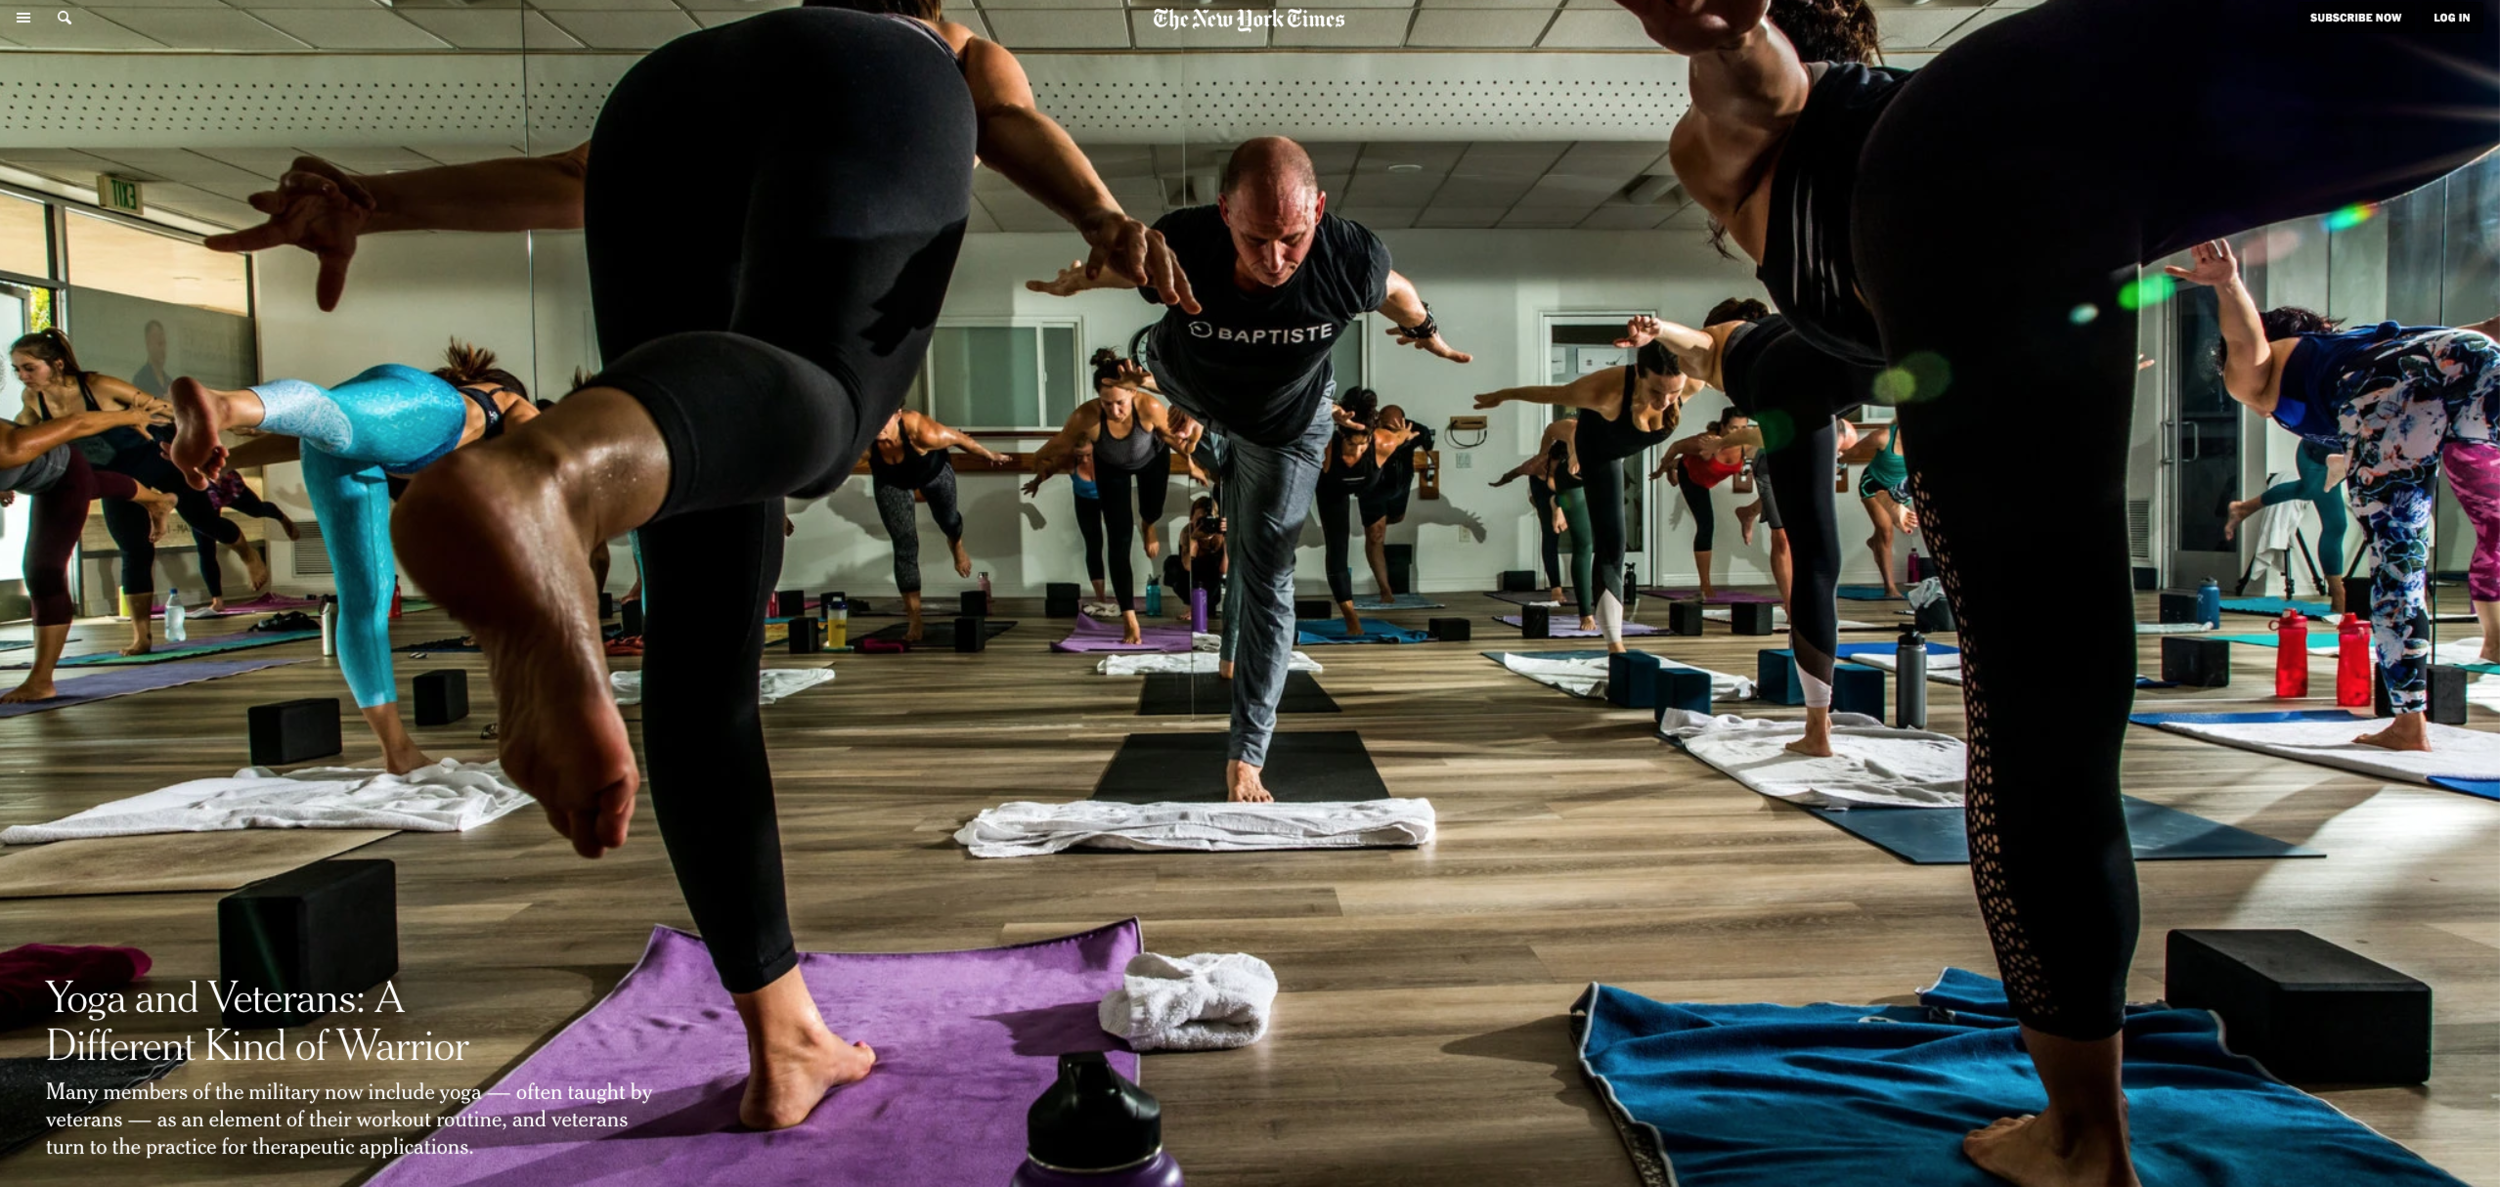 NYT Yoga and Veterans A Different Kind of Warrior.png